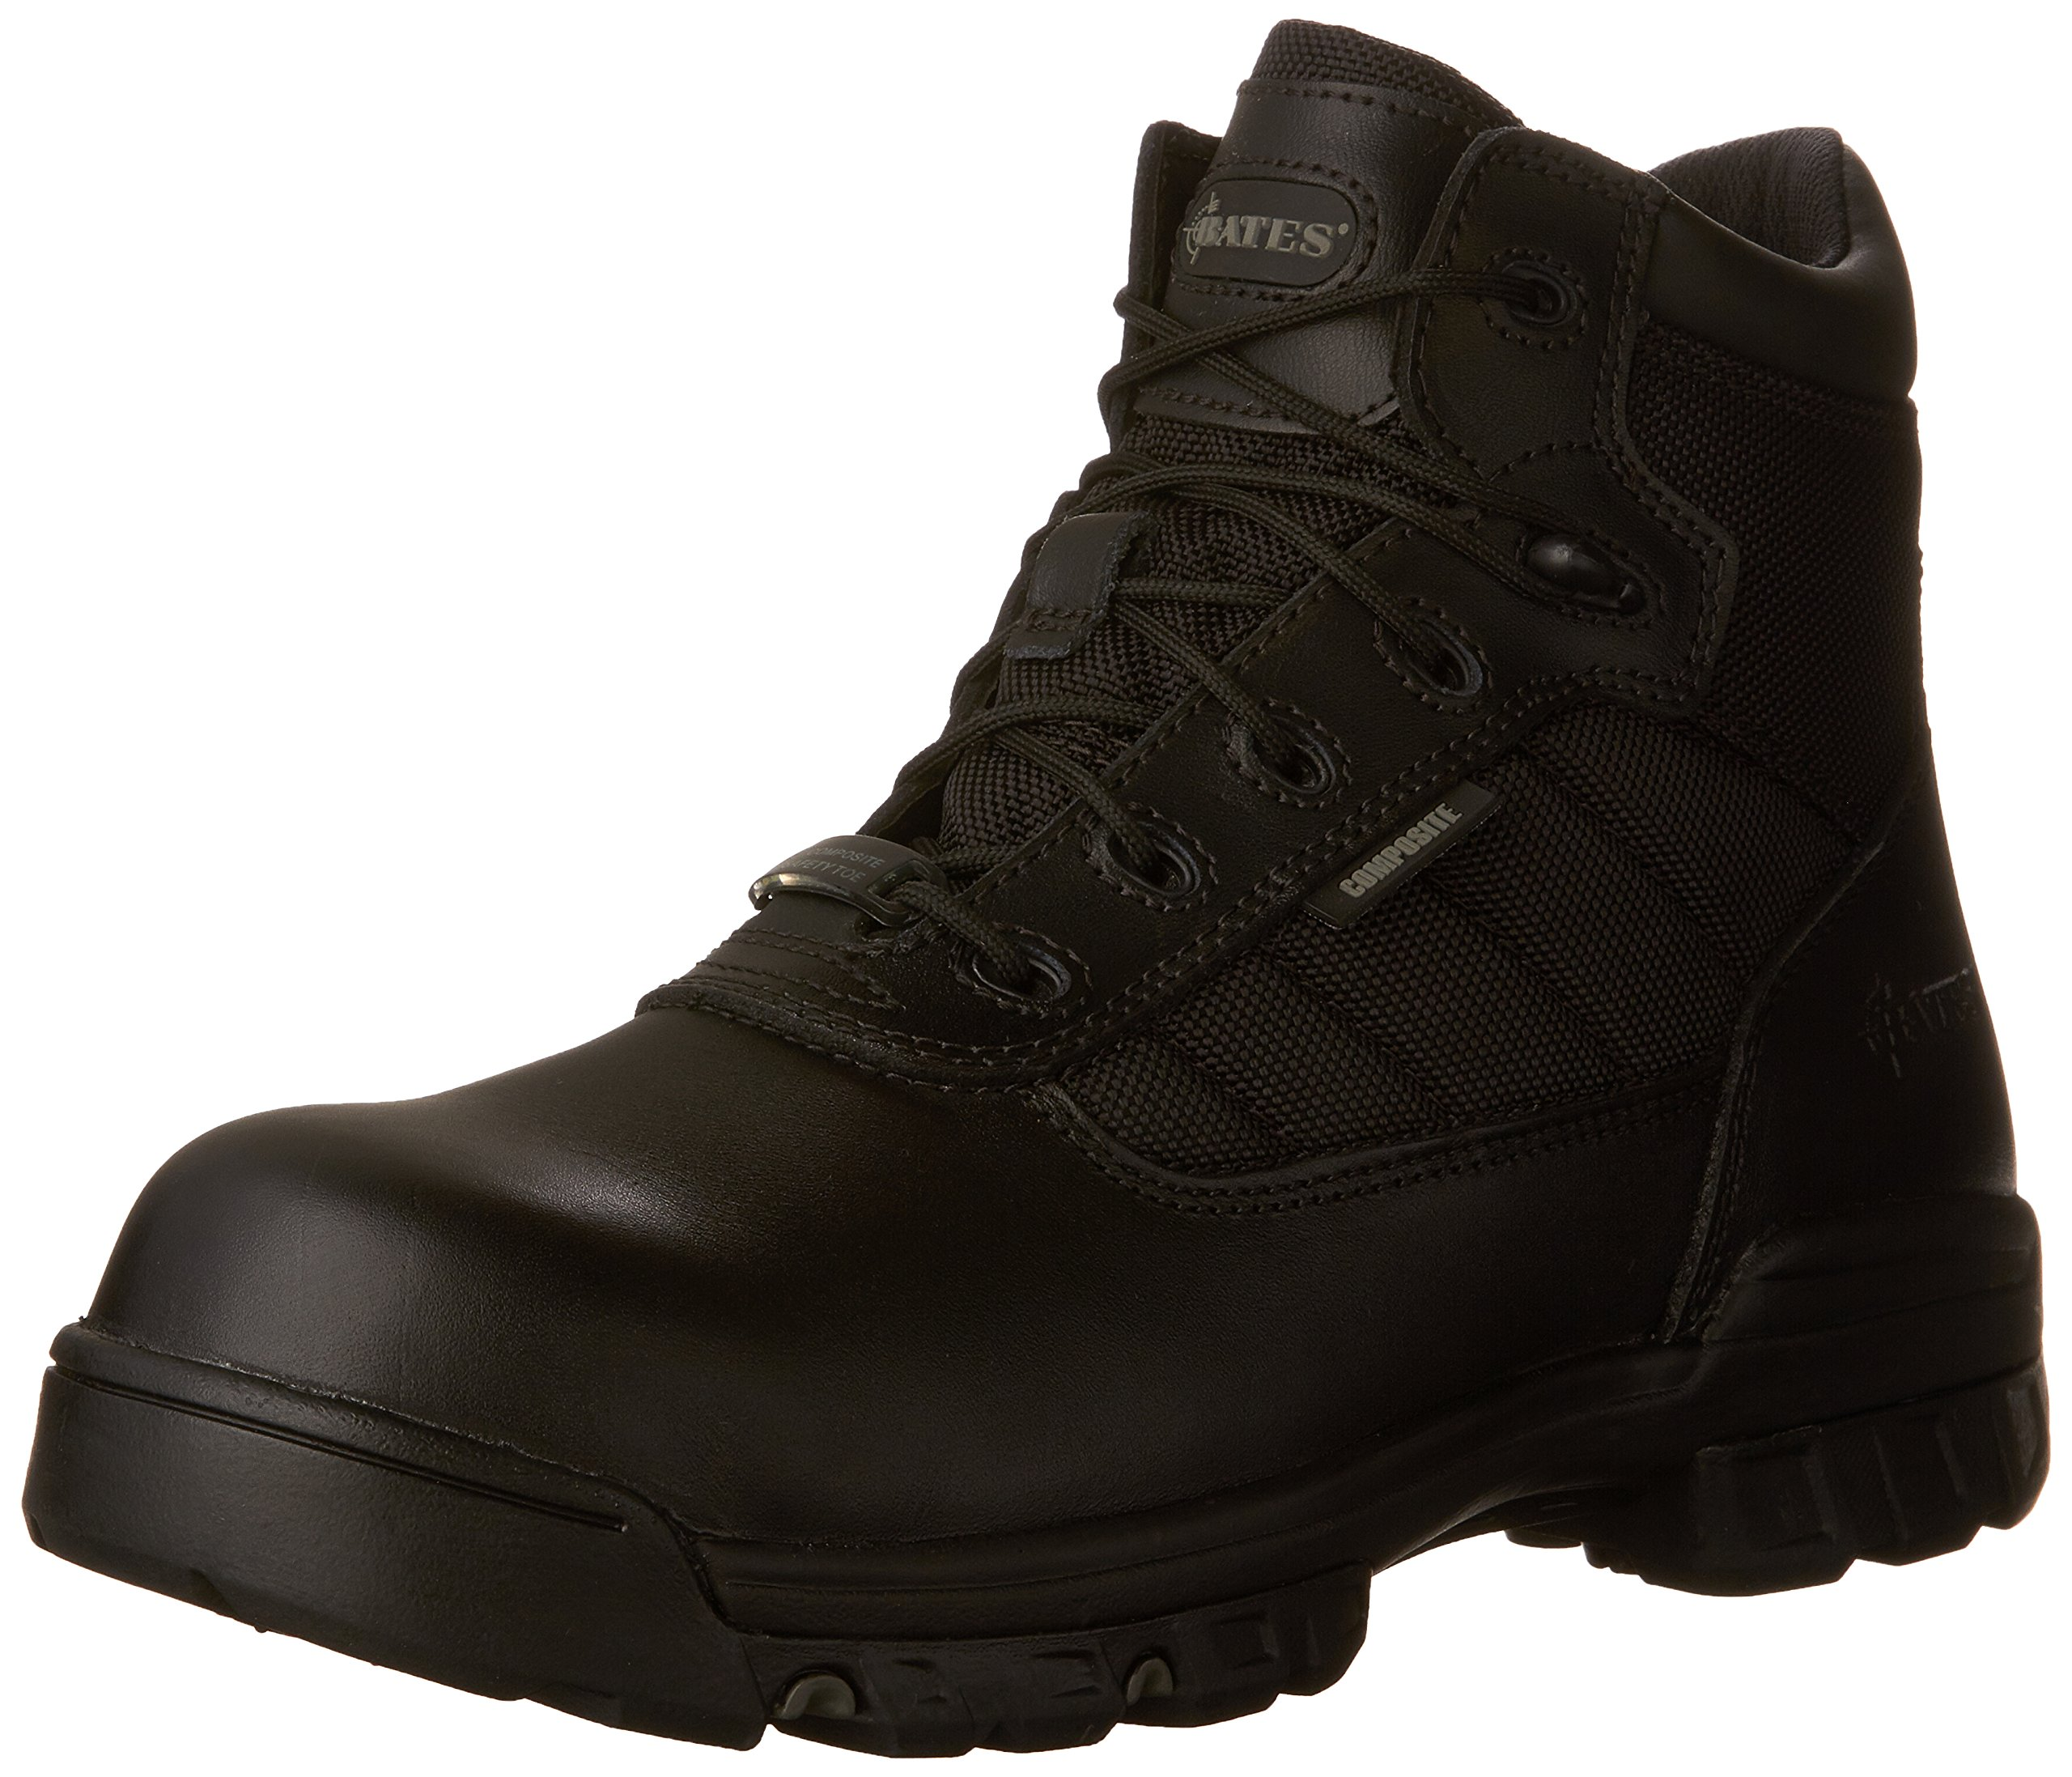 Bates Men's Enforcer 5 Inch SZ Leather Nylon SEMC Uniform Work Boot, Black, 10.5 M US by Bates